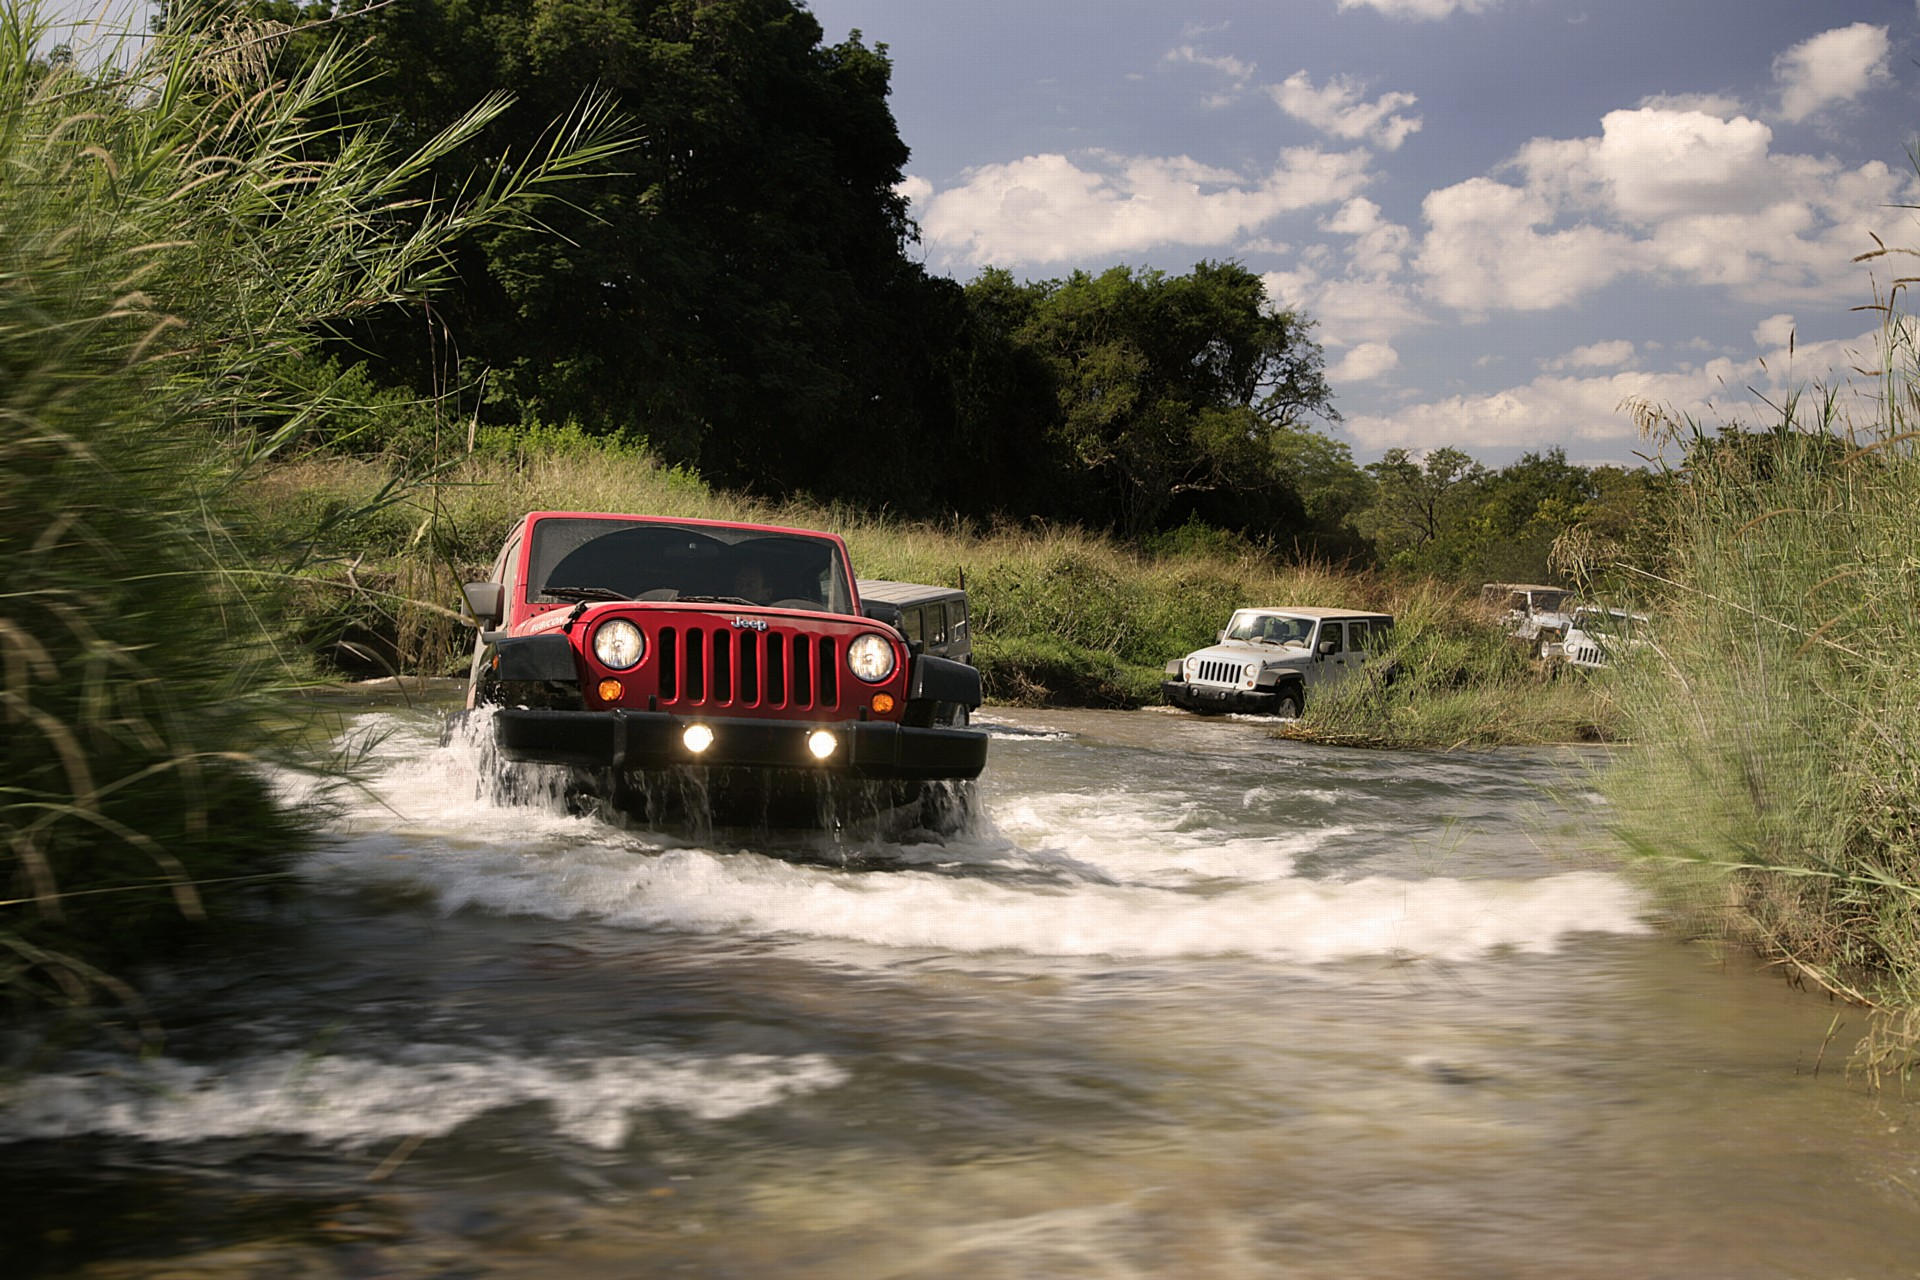 Jeep Wrangler Mudding Wallpaper   iBackgroundWallpaper 1920x1280